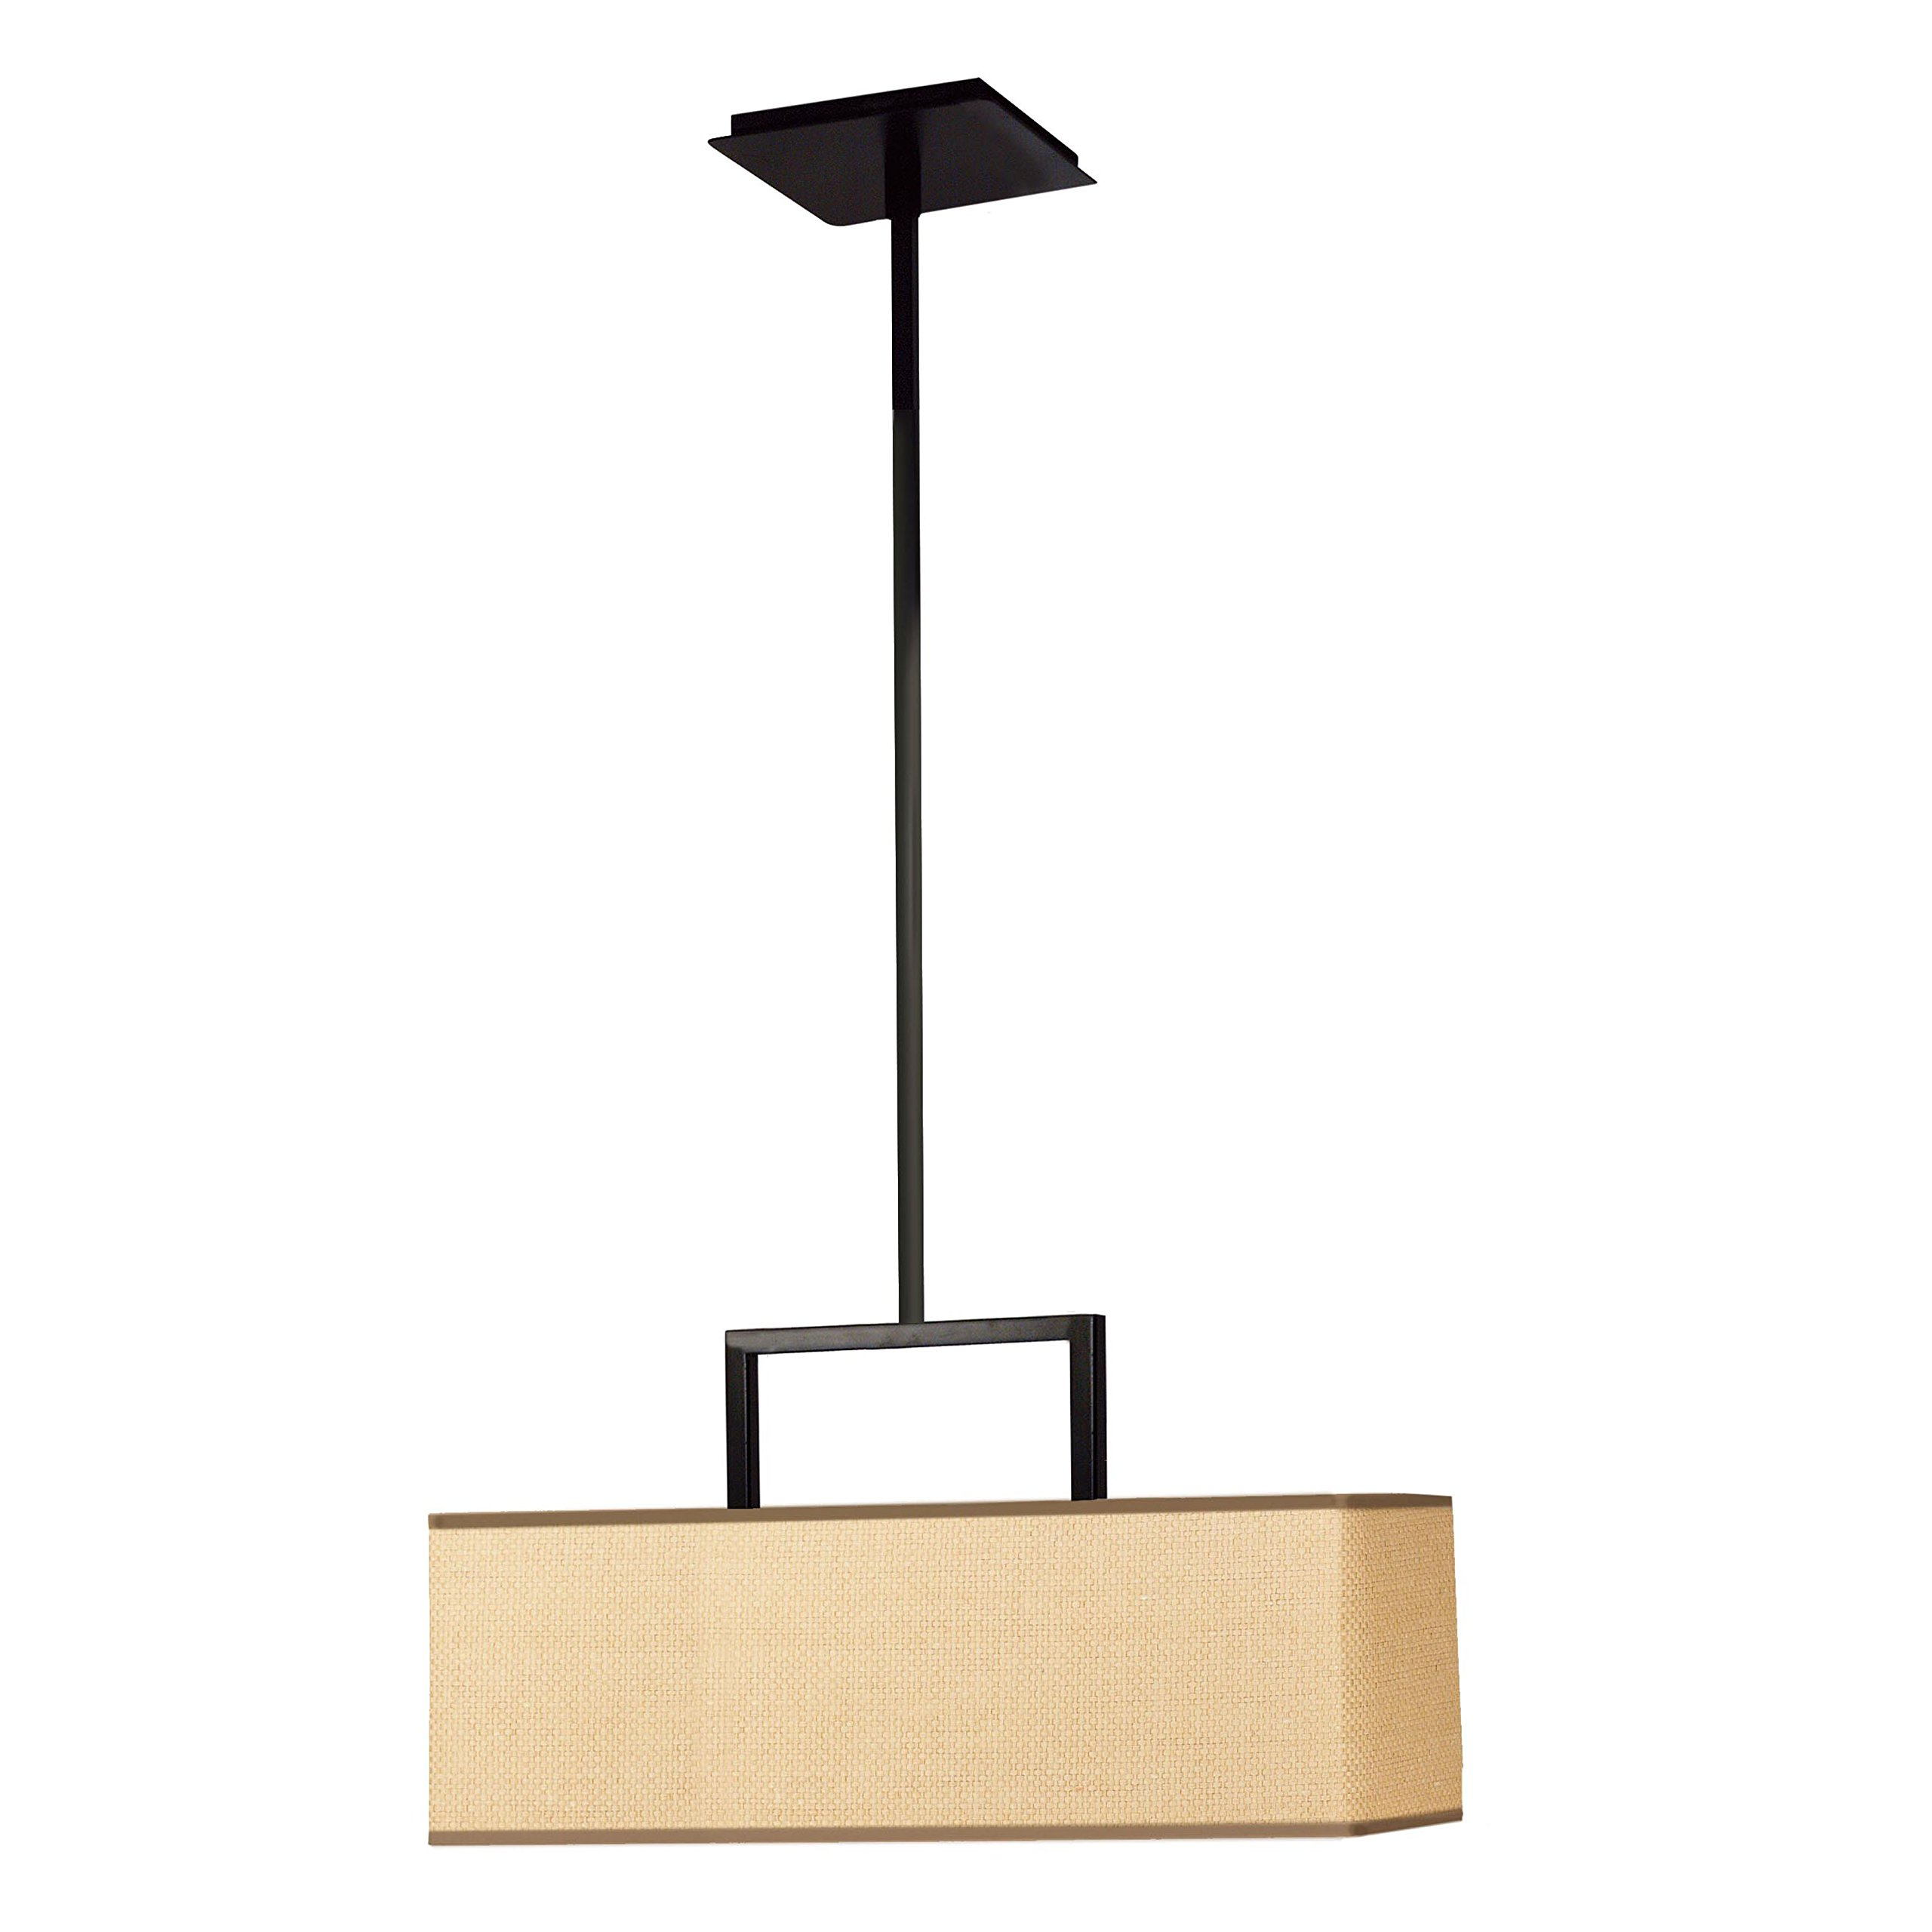 Kenroy Home 93423BRZ Emilio 3-Light Pendant, Bronze Finish by Kenroy Home